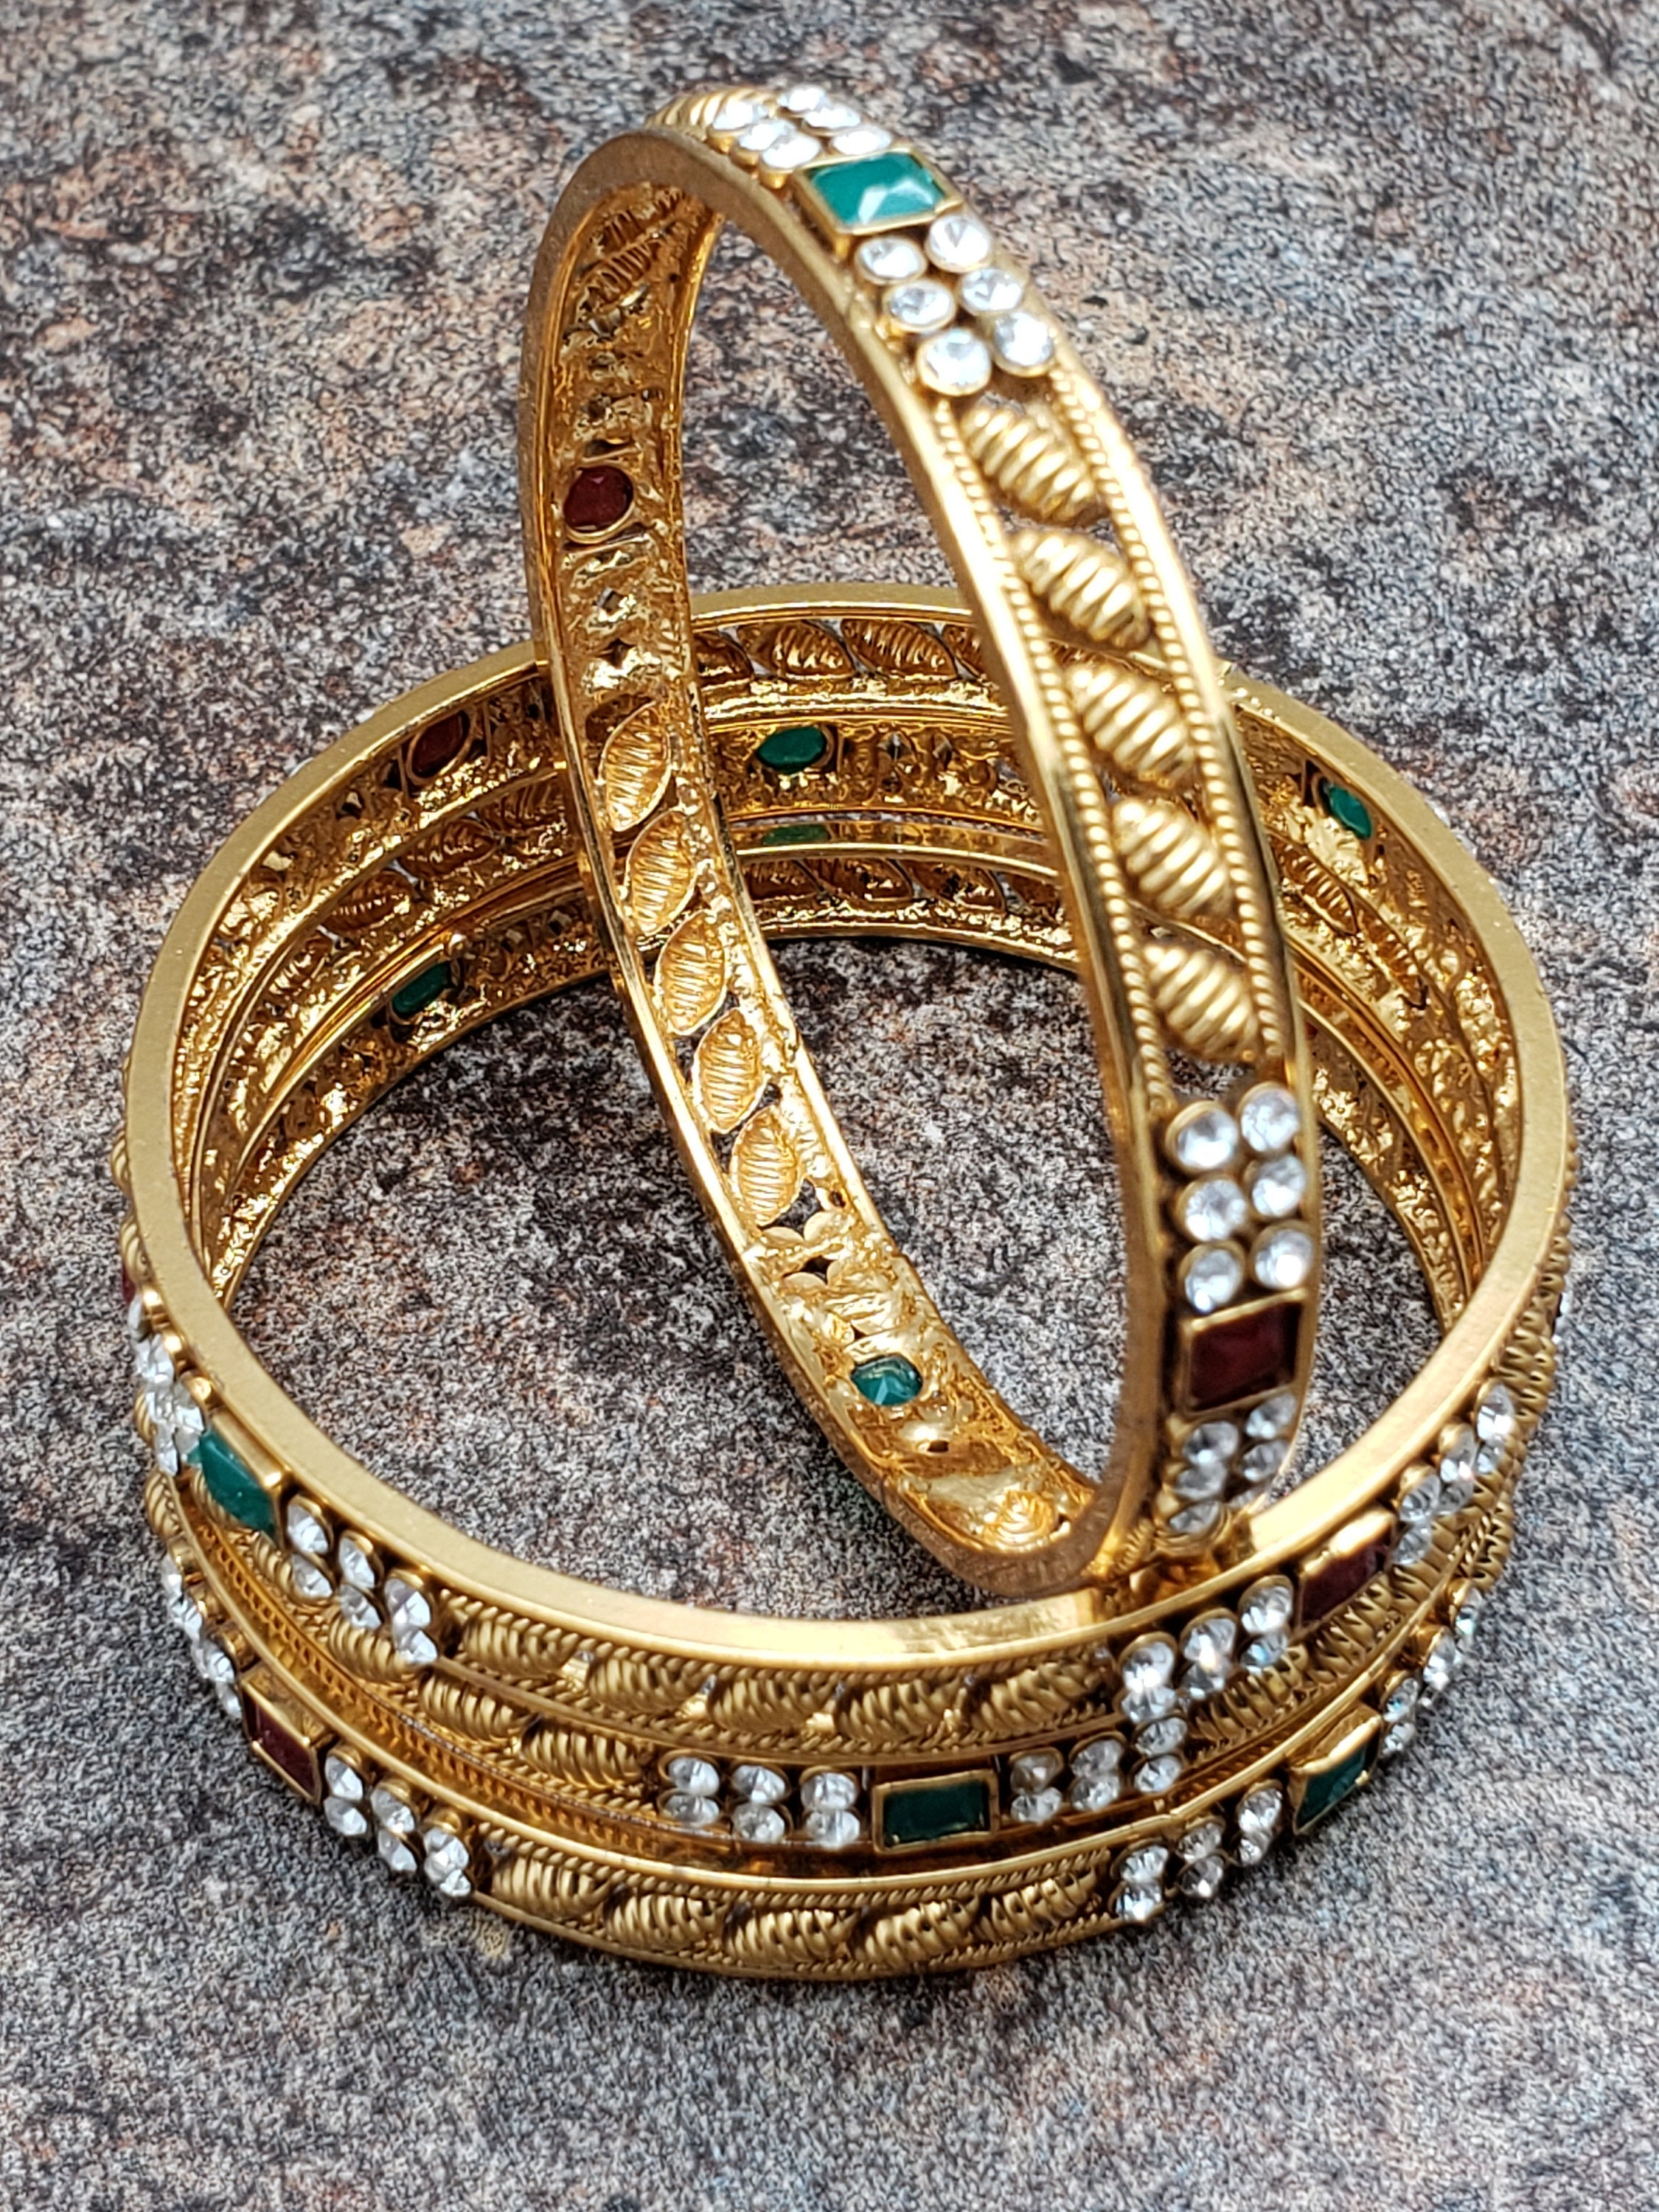 Set of 4 Bangles, Gold Bangles with Crystal and Faux Ruby and Emerald Stones, Size 2.4